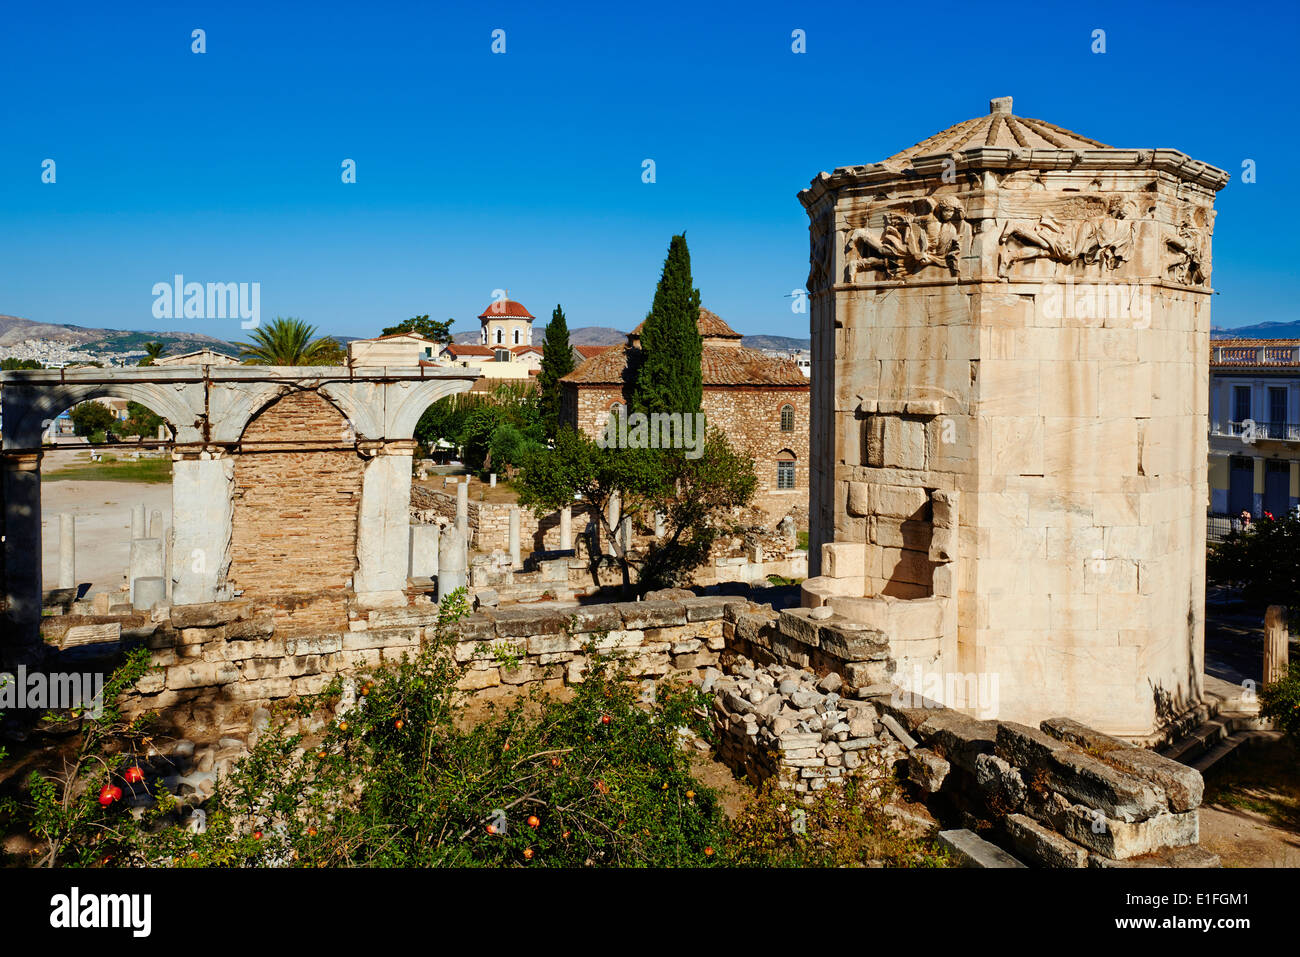 Greece, Athens, the Tower of the Winds in the Roman Agora of Athens - Stock Image